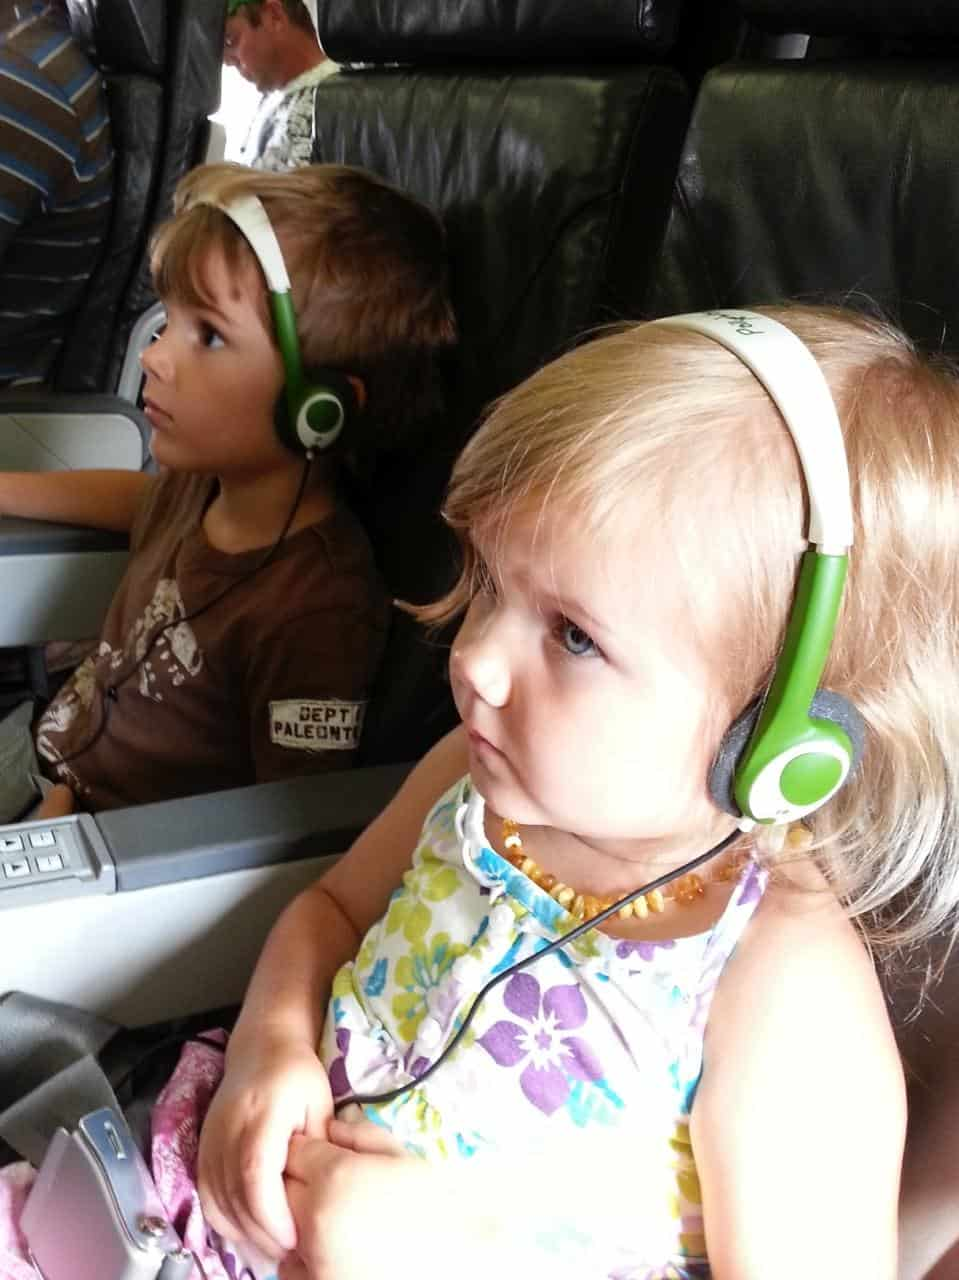 Toddler headphones on airplane